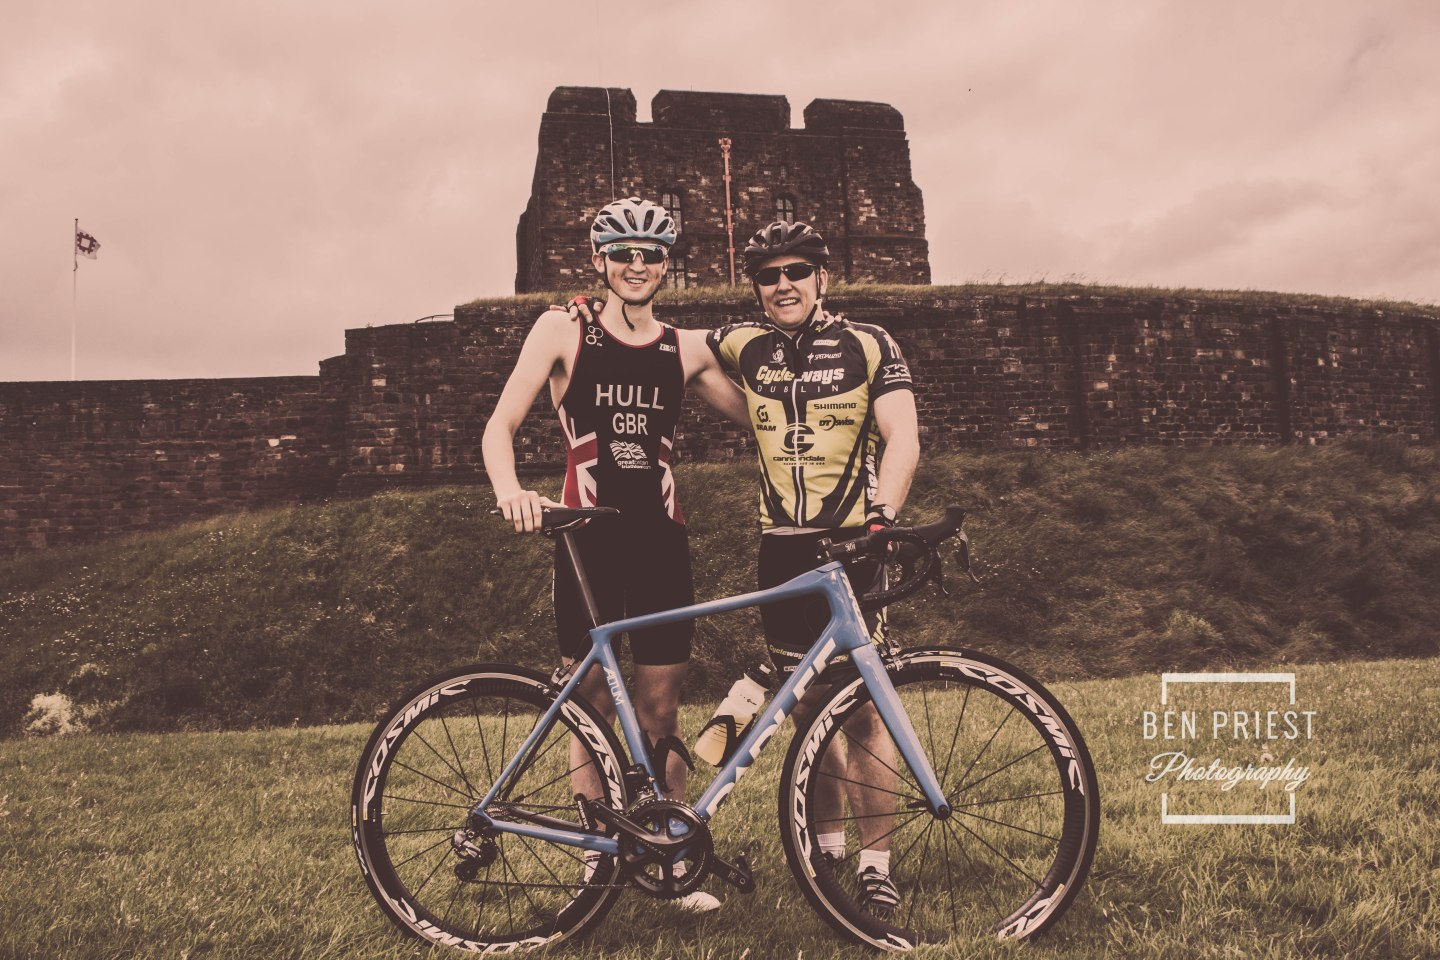 Team GB Triathlete – Jordan Hull – Cumbrian Ambassador for the World Health Innovation Summit, with Gareth Presch no.10